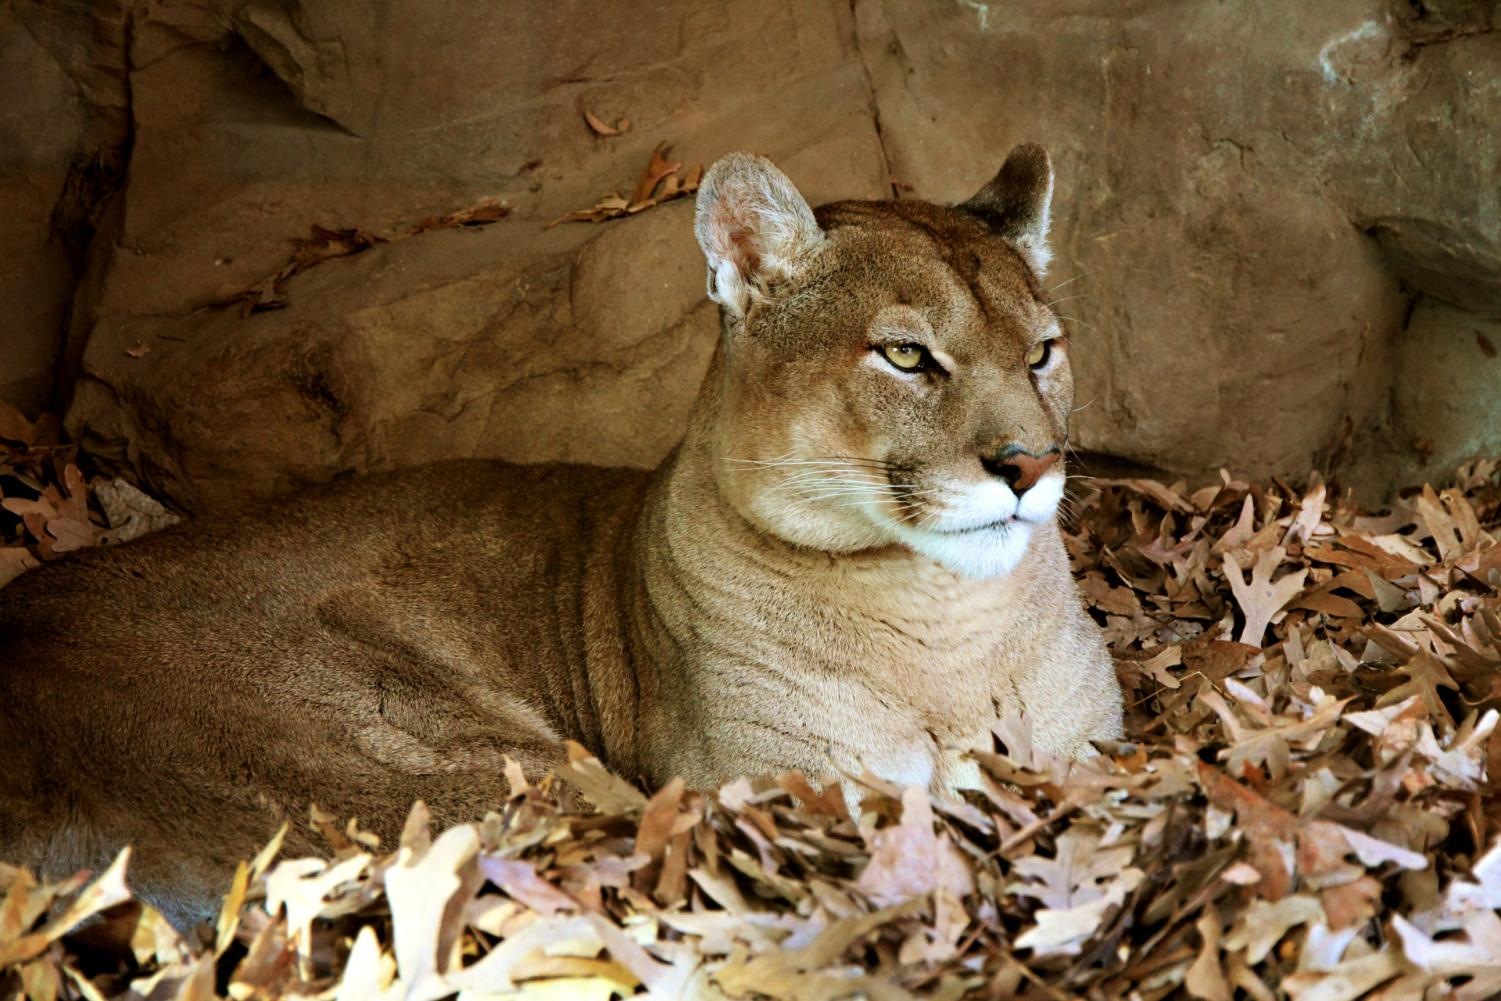 Cougar Attacks Hikers, Why?